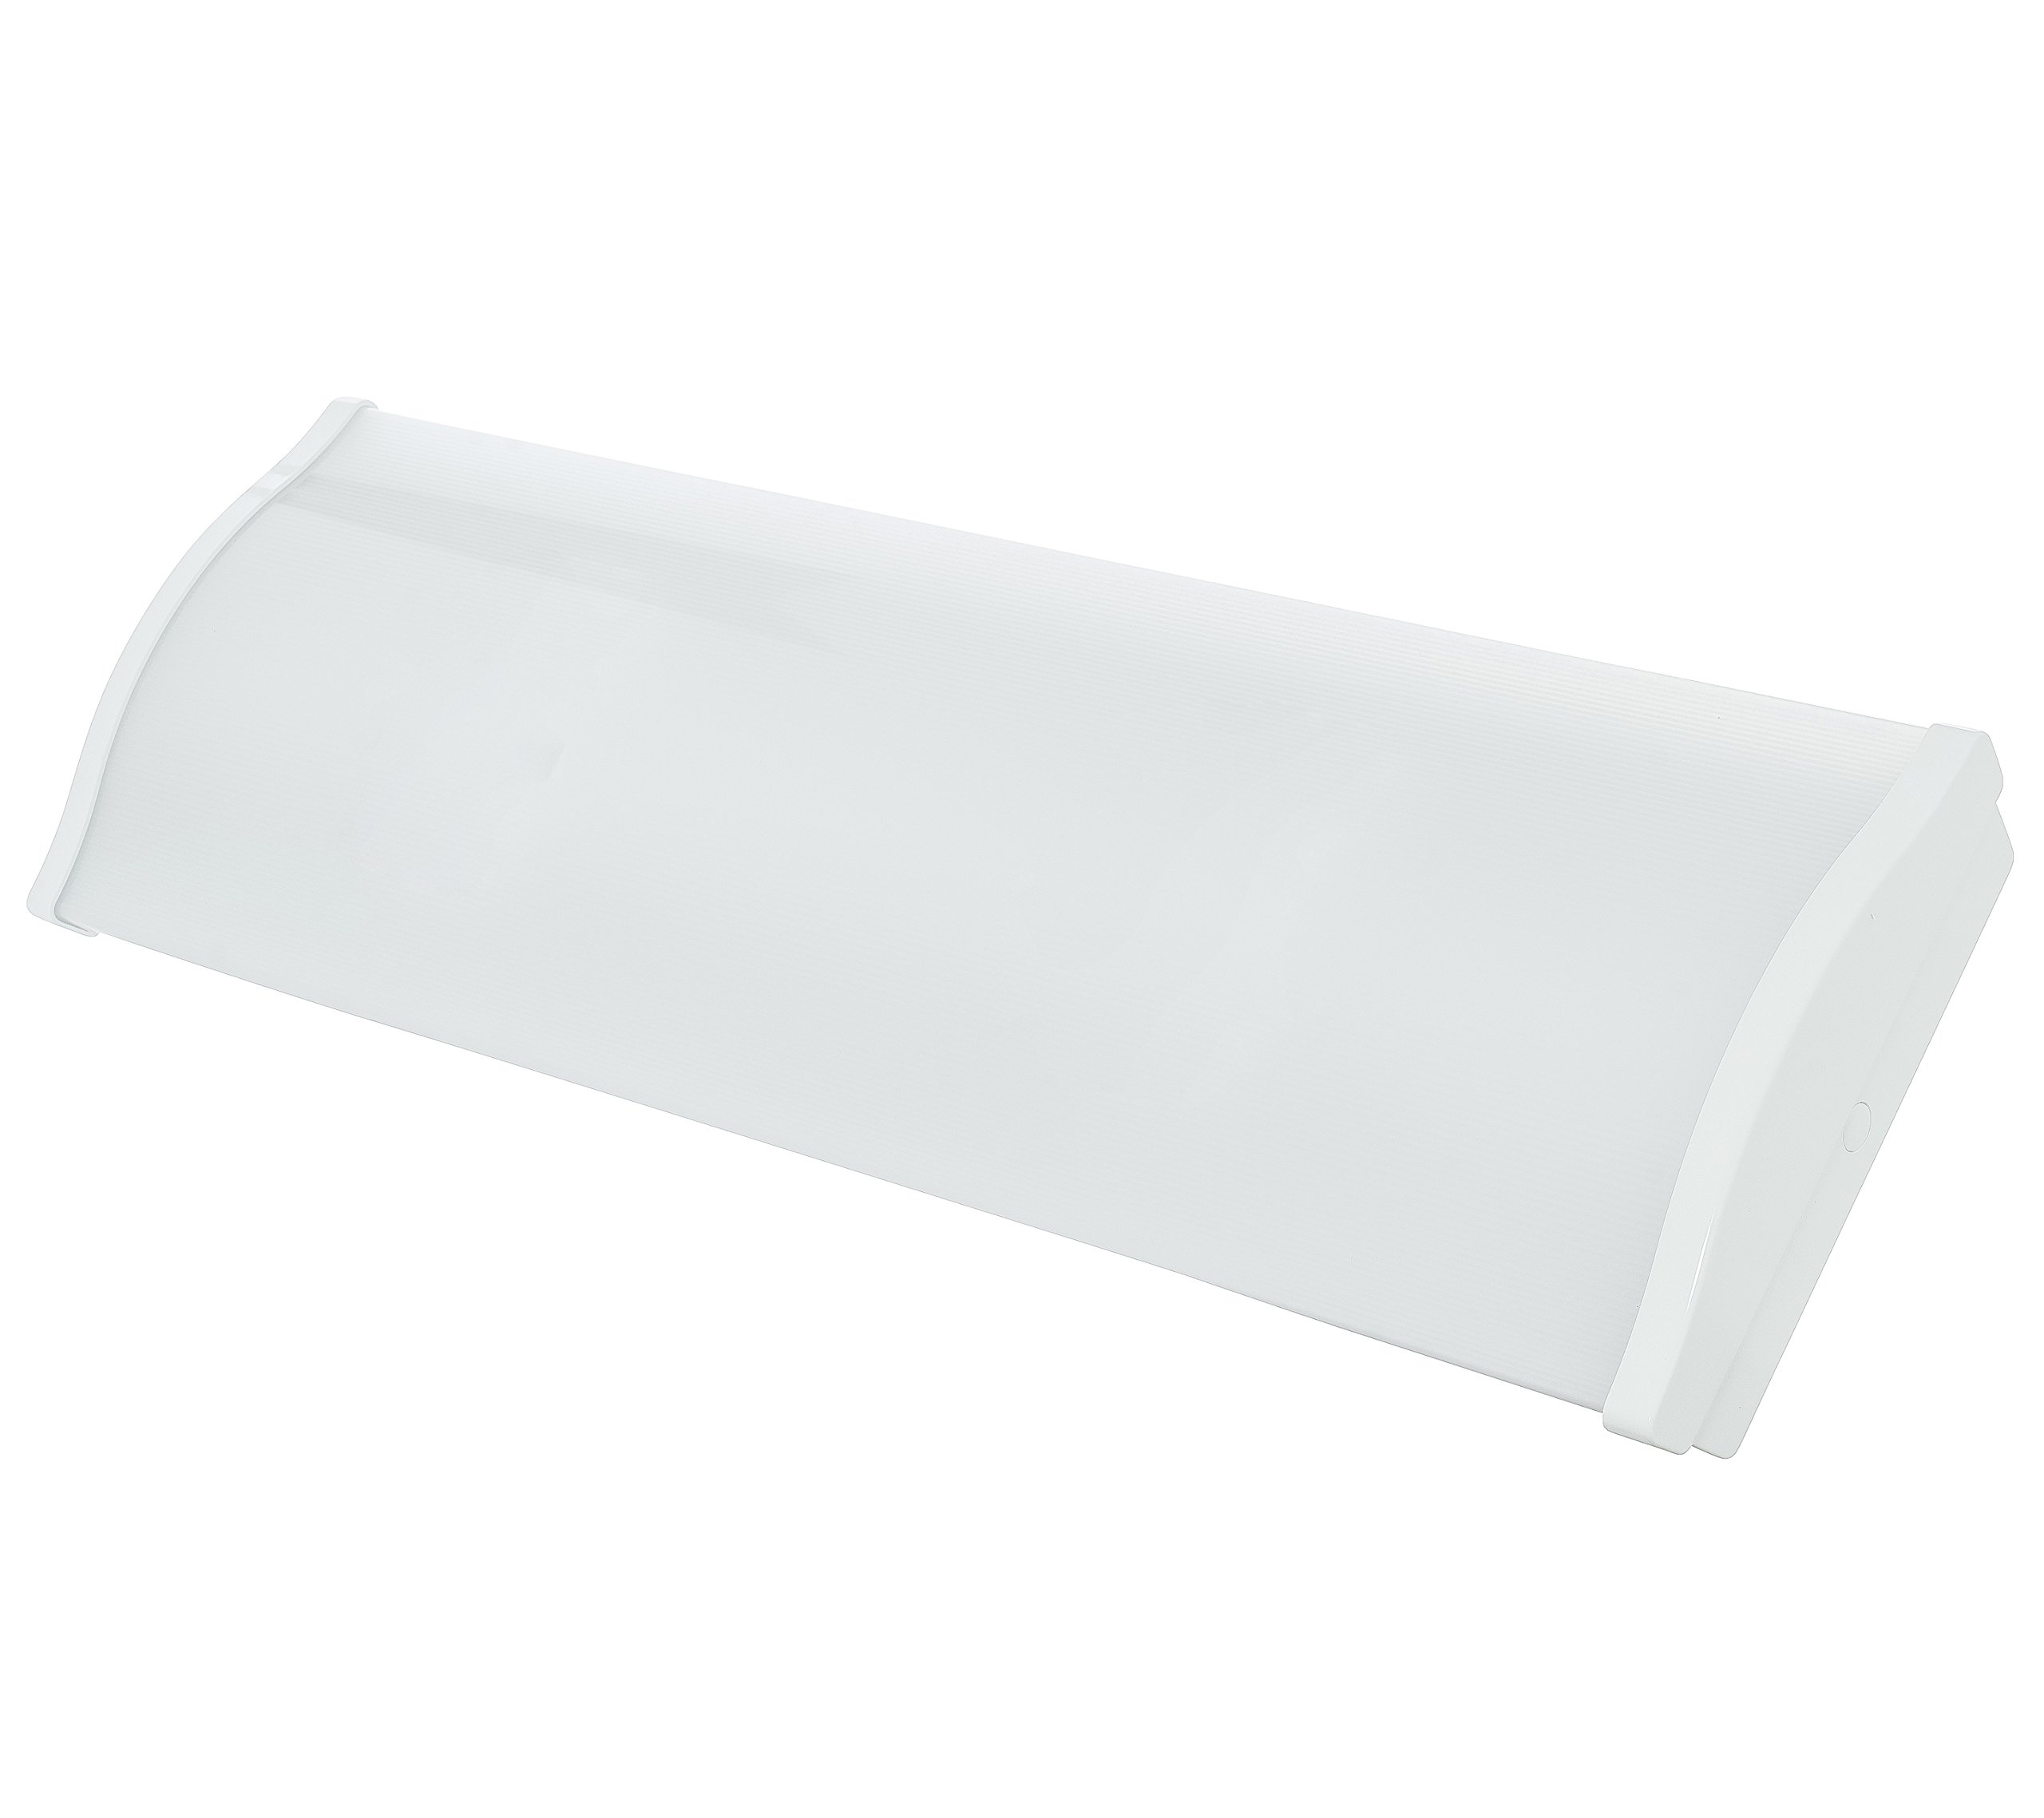 Westgate Lighting LED Wrap Around Light -Ceiling Mounted- UL Listed- LM79 & LM80 Tested- High Lumen- 100-277V AC (25W, 4000K White)